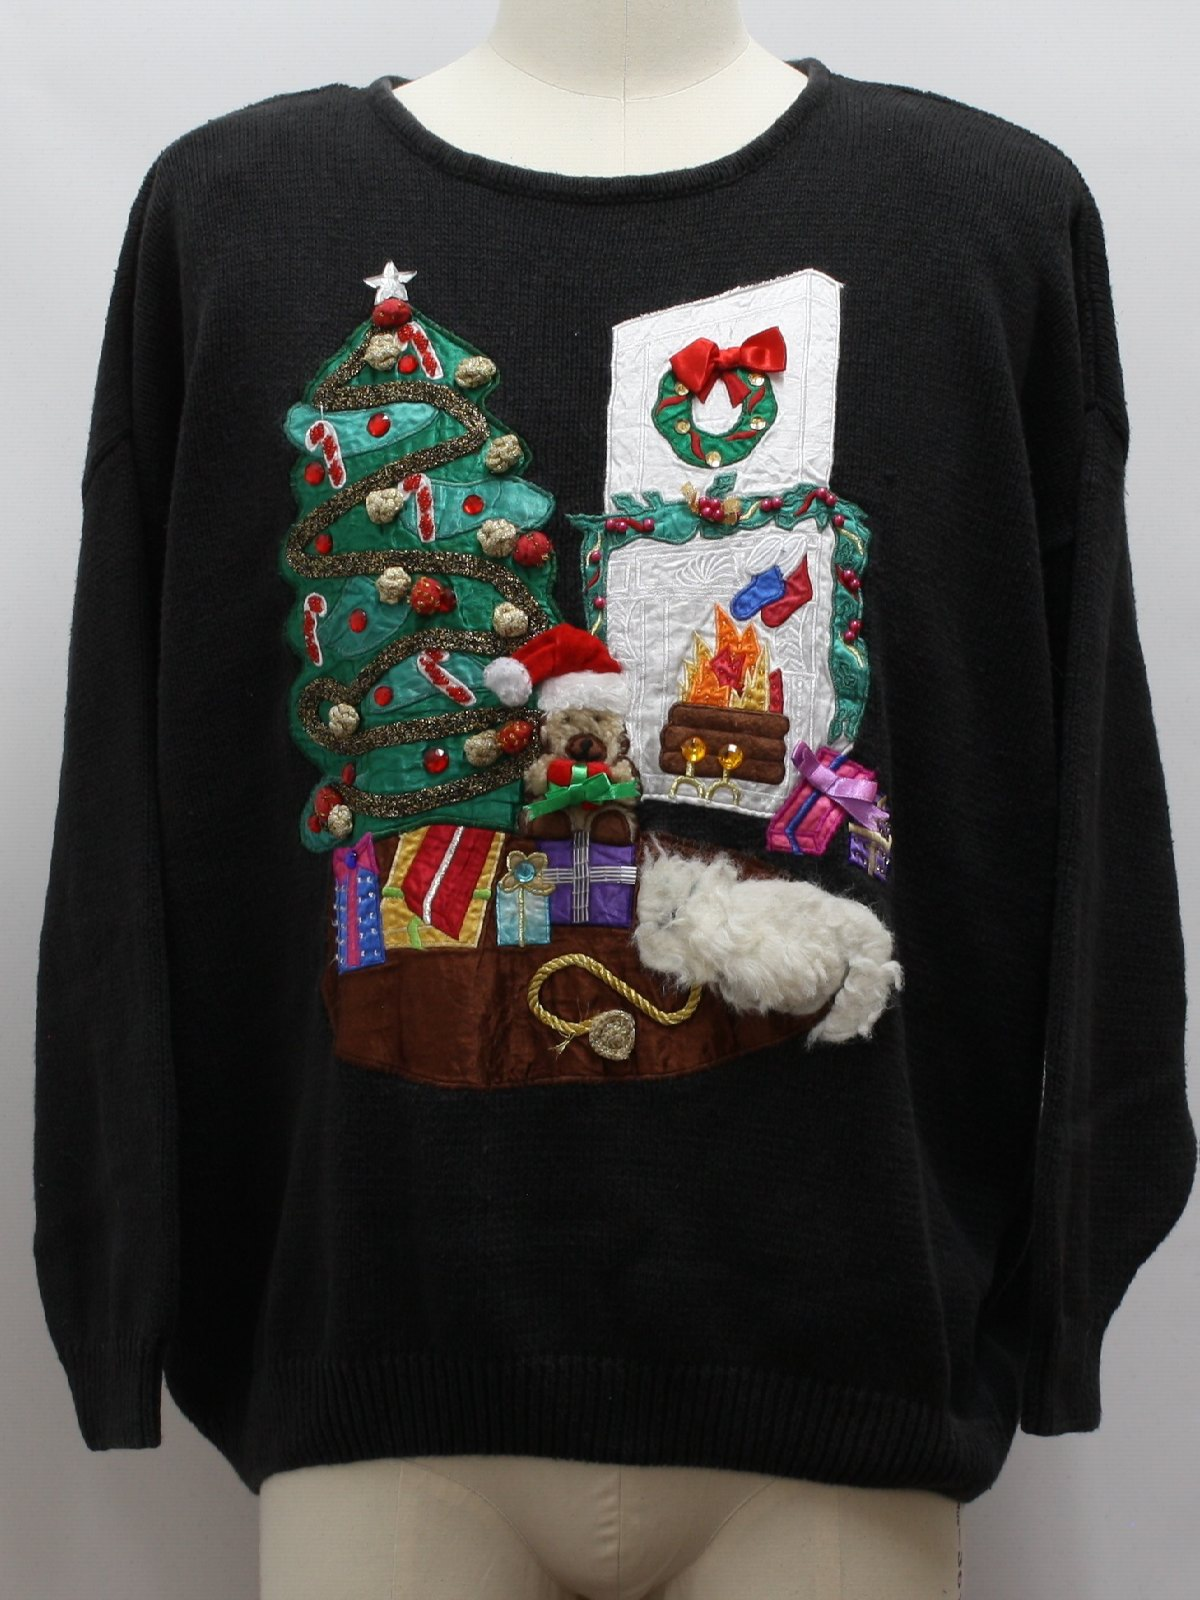 Ugly Christmas Sweater Work In Progress Unisex Black Background Cotton Polyester Blend